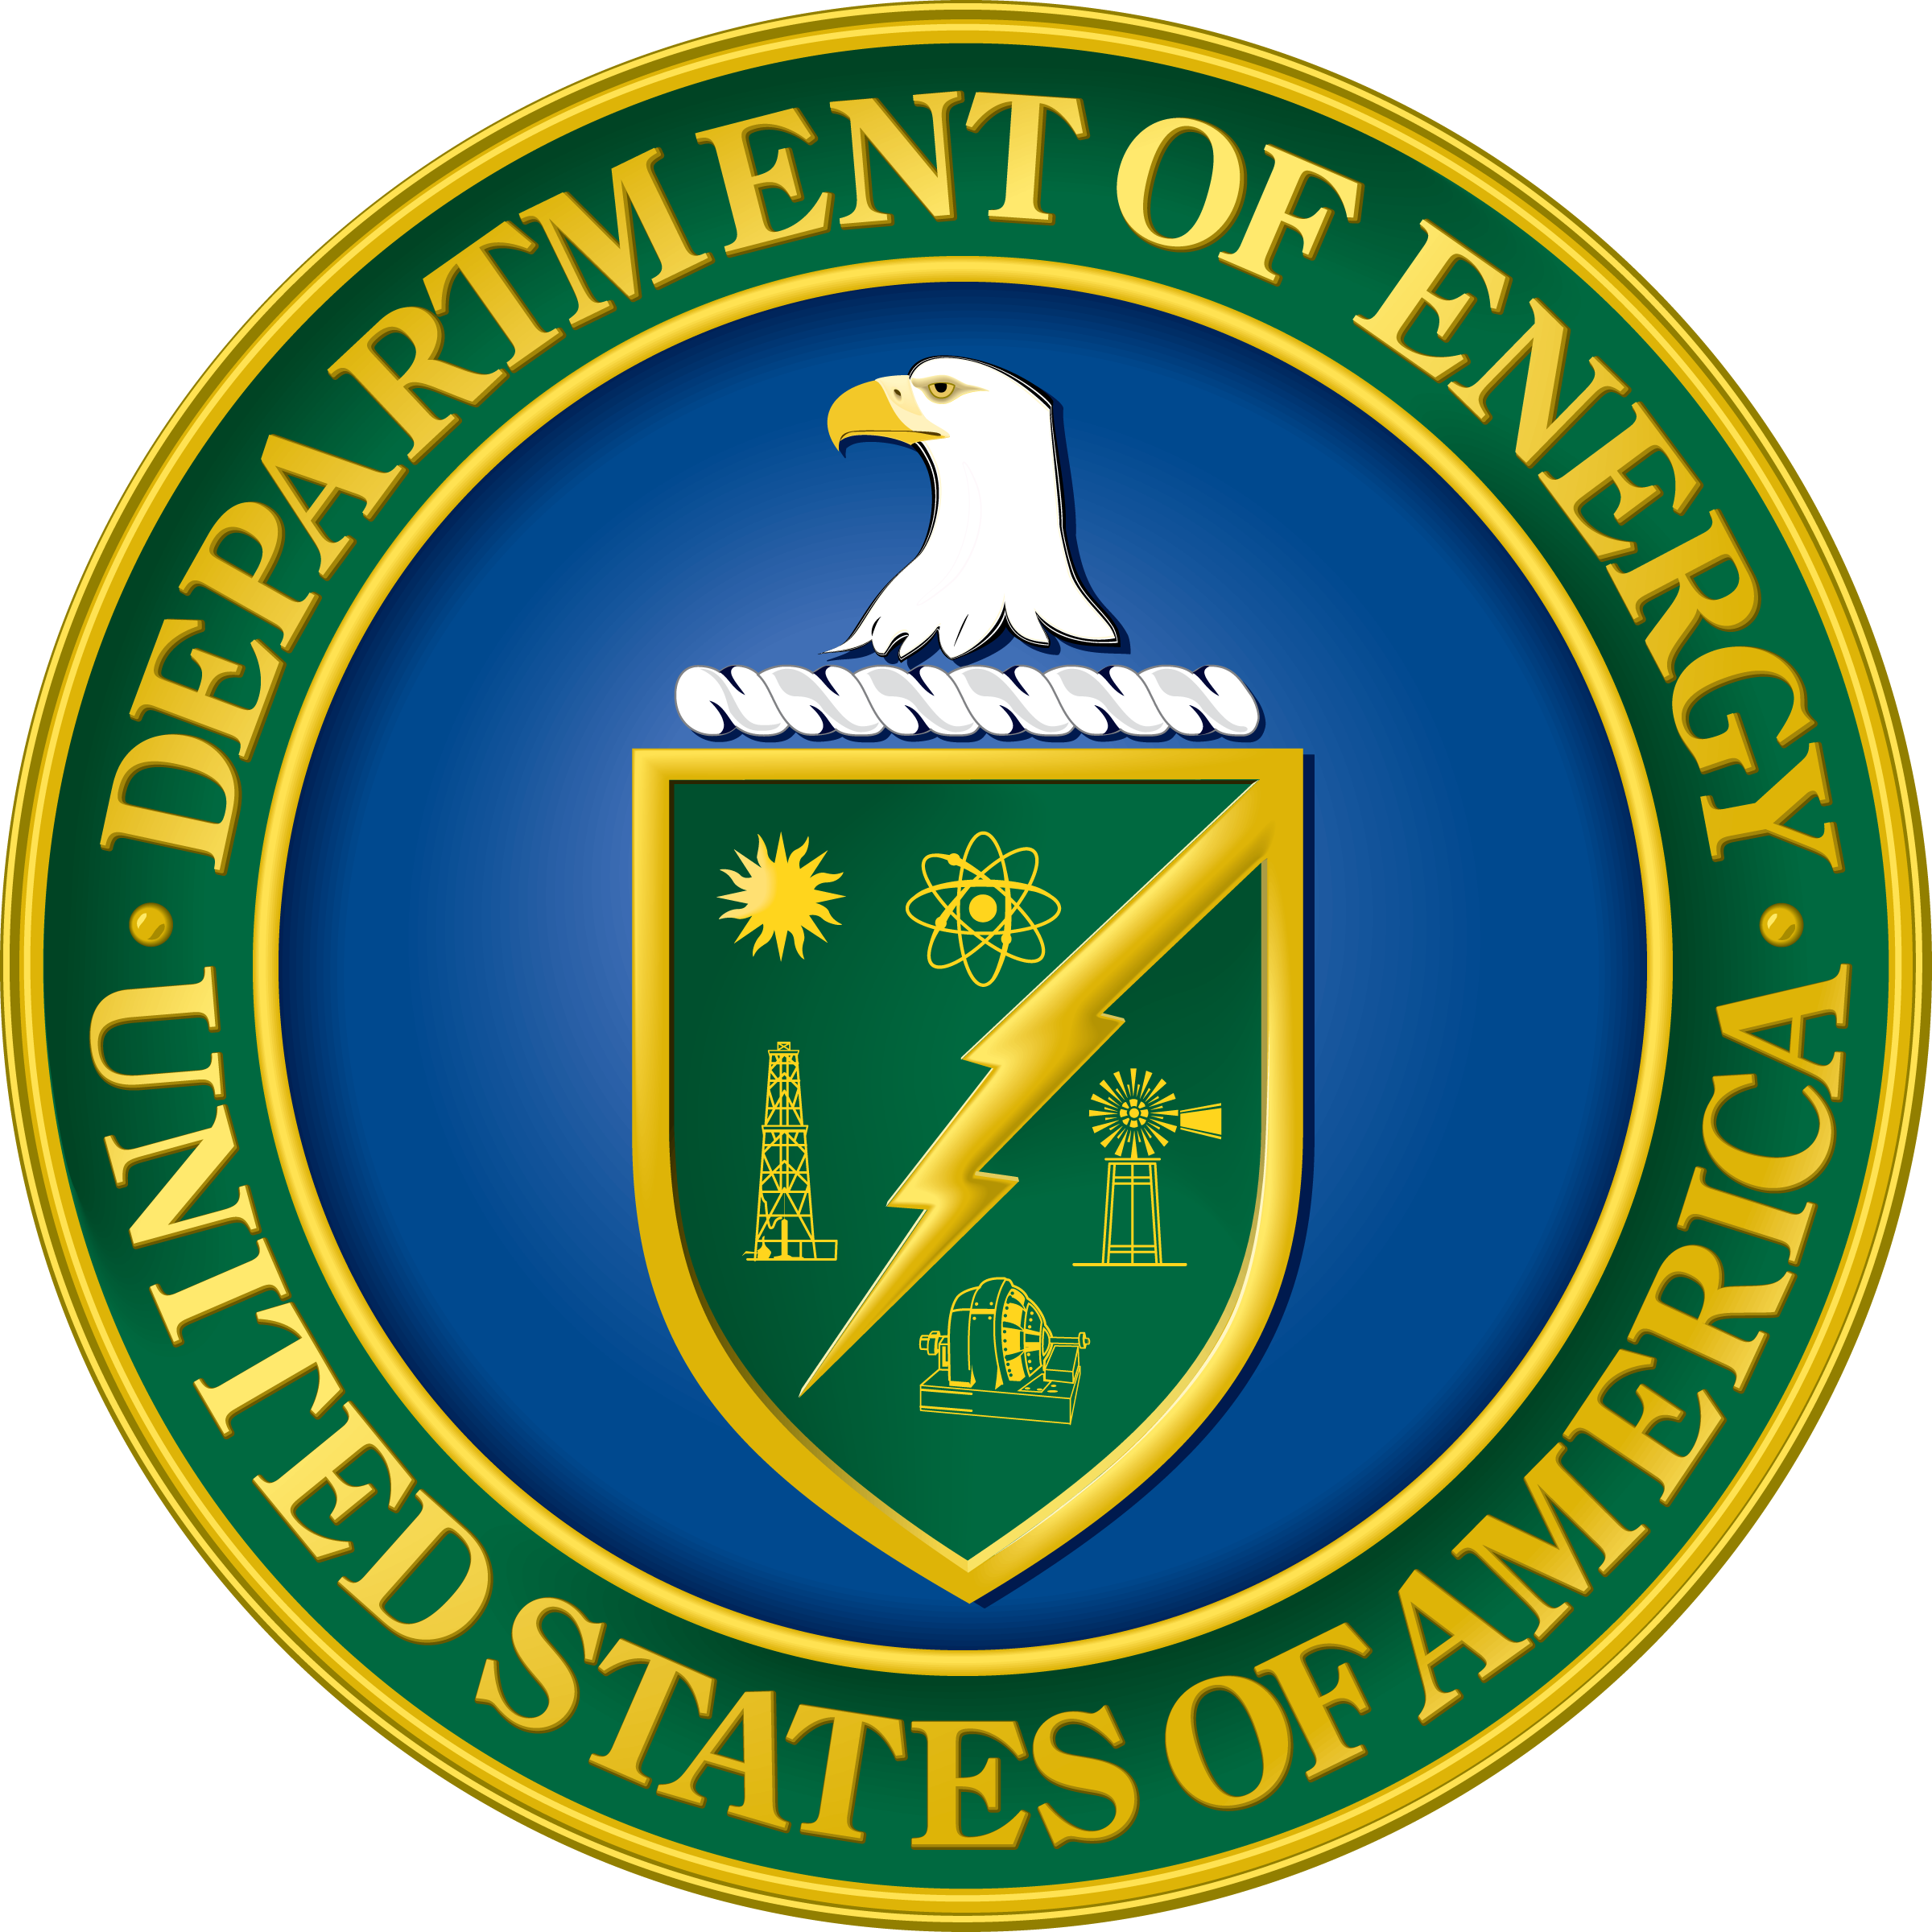 a circular medalion with the Department of Energy seal, which depicts the head of an eagle over a sheild with various methods of producing power and a lightning bolt encircled by the agency name.